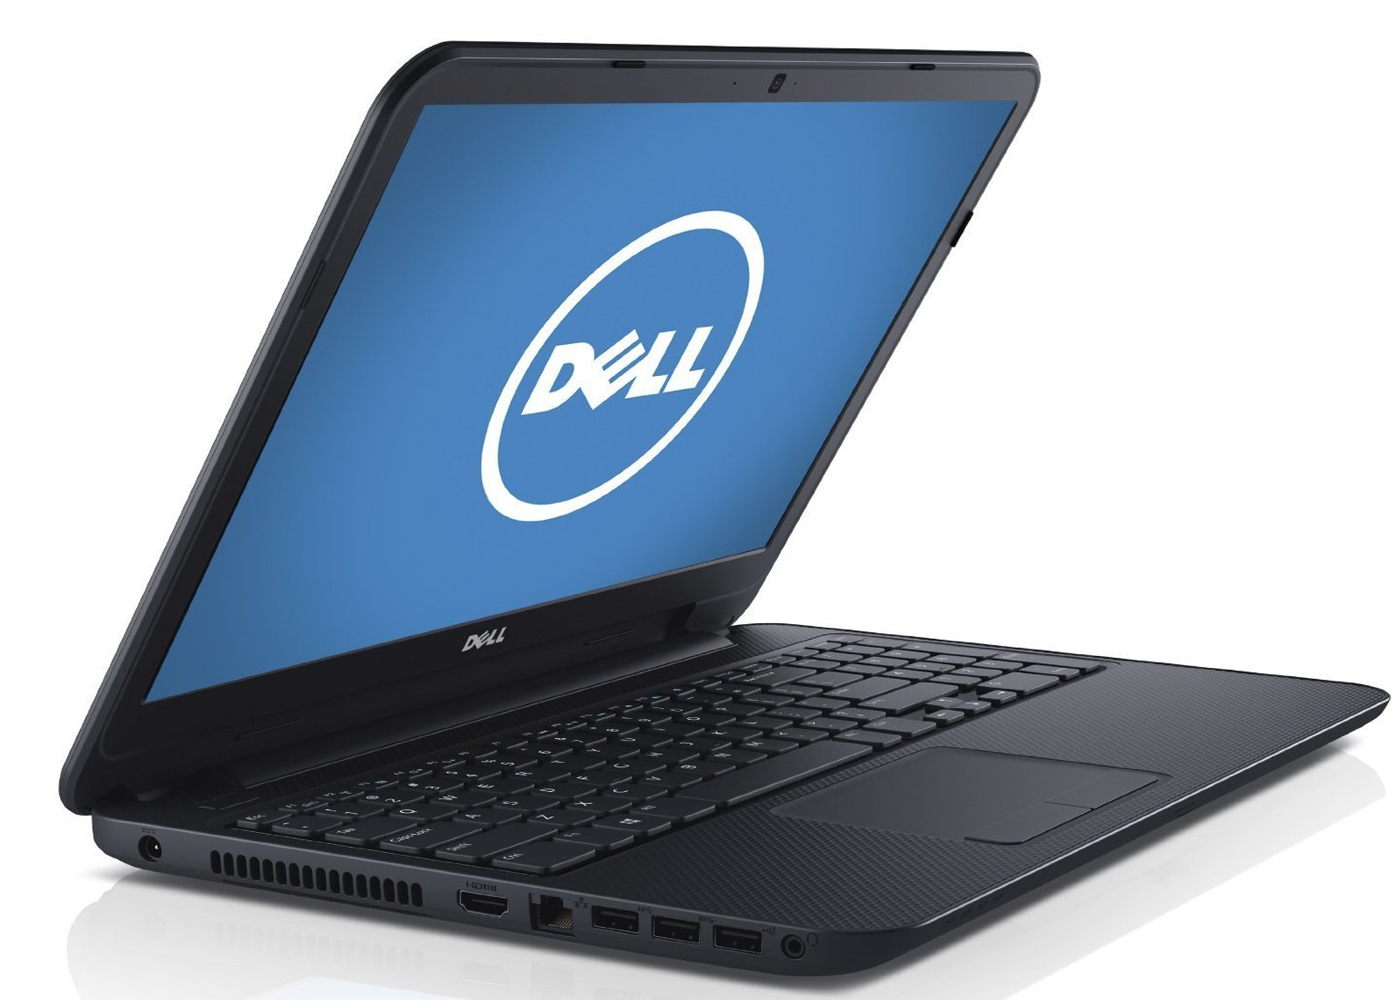 about the dell inspiron 15 3521 15 6 inch laptop black features and technical details are. Black Bedroom Furniture Sets. Home Design Ideas